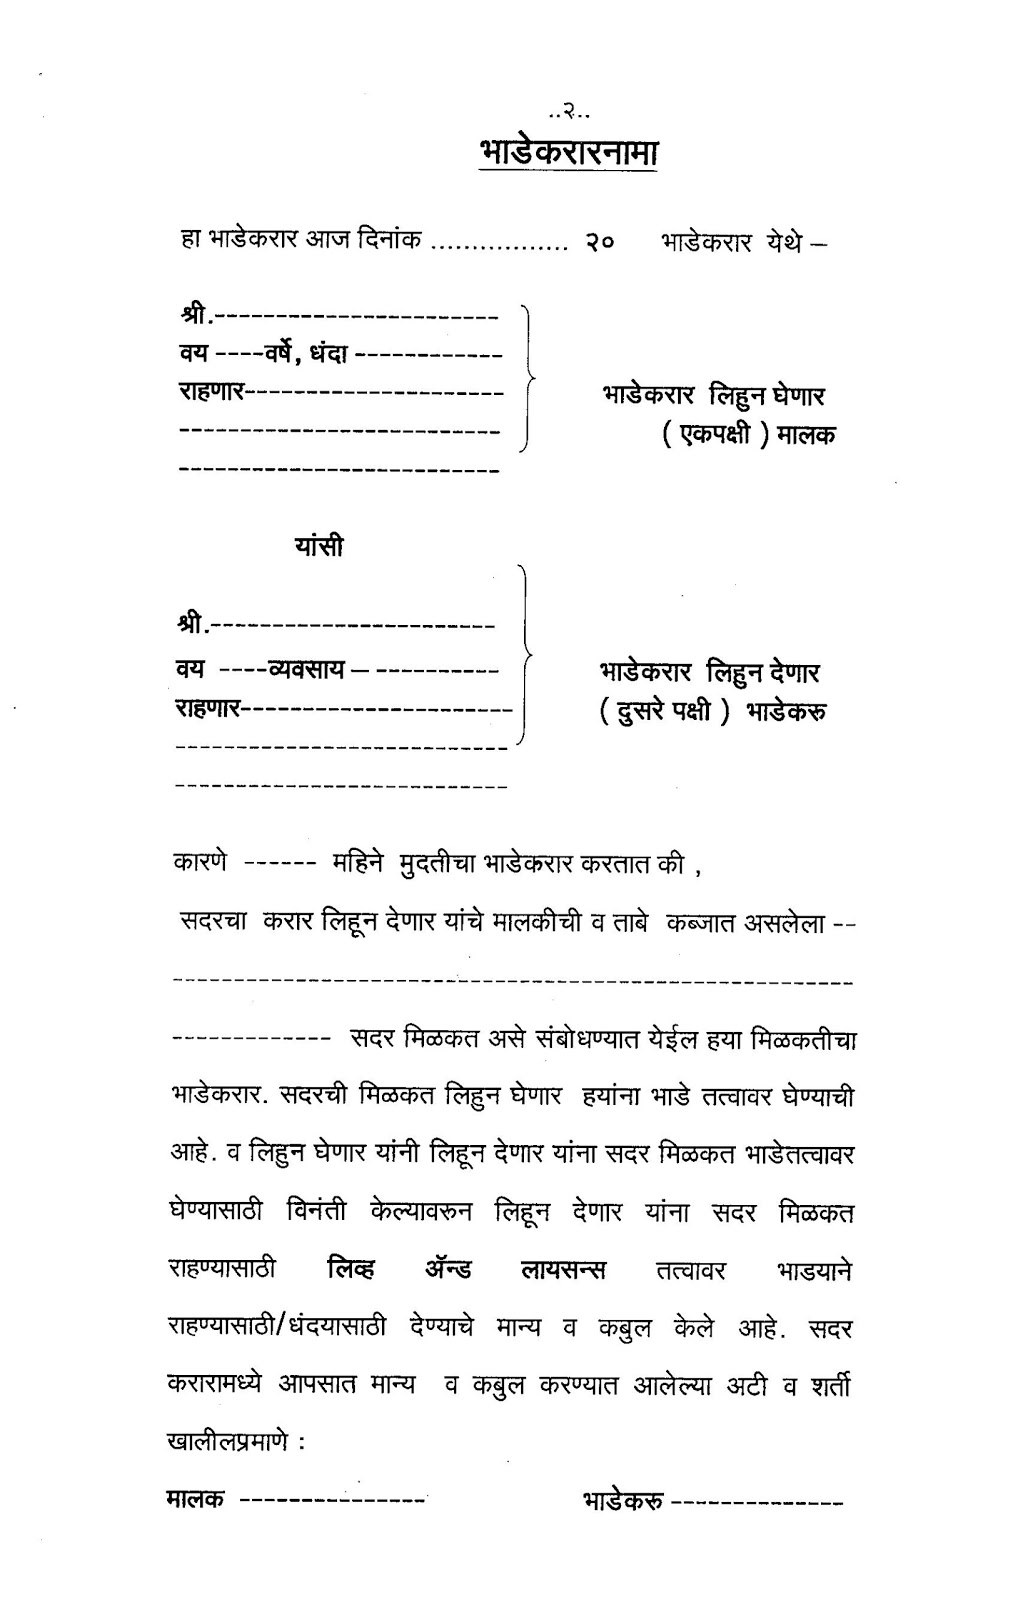 More you Thesis Meaning In Marathi Of Designation Meaning Rush Country